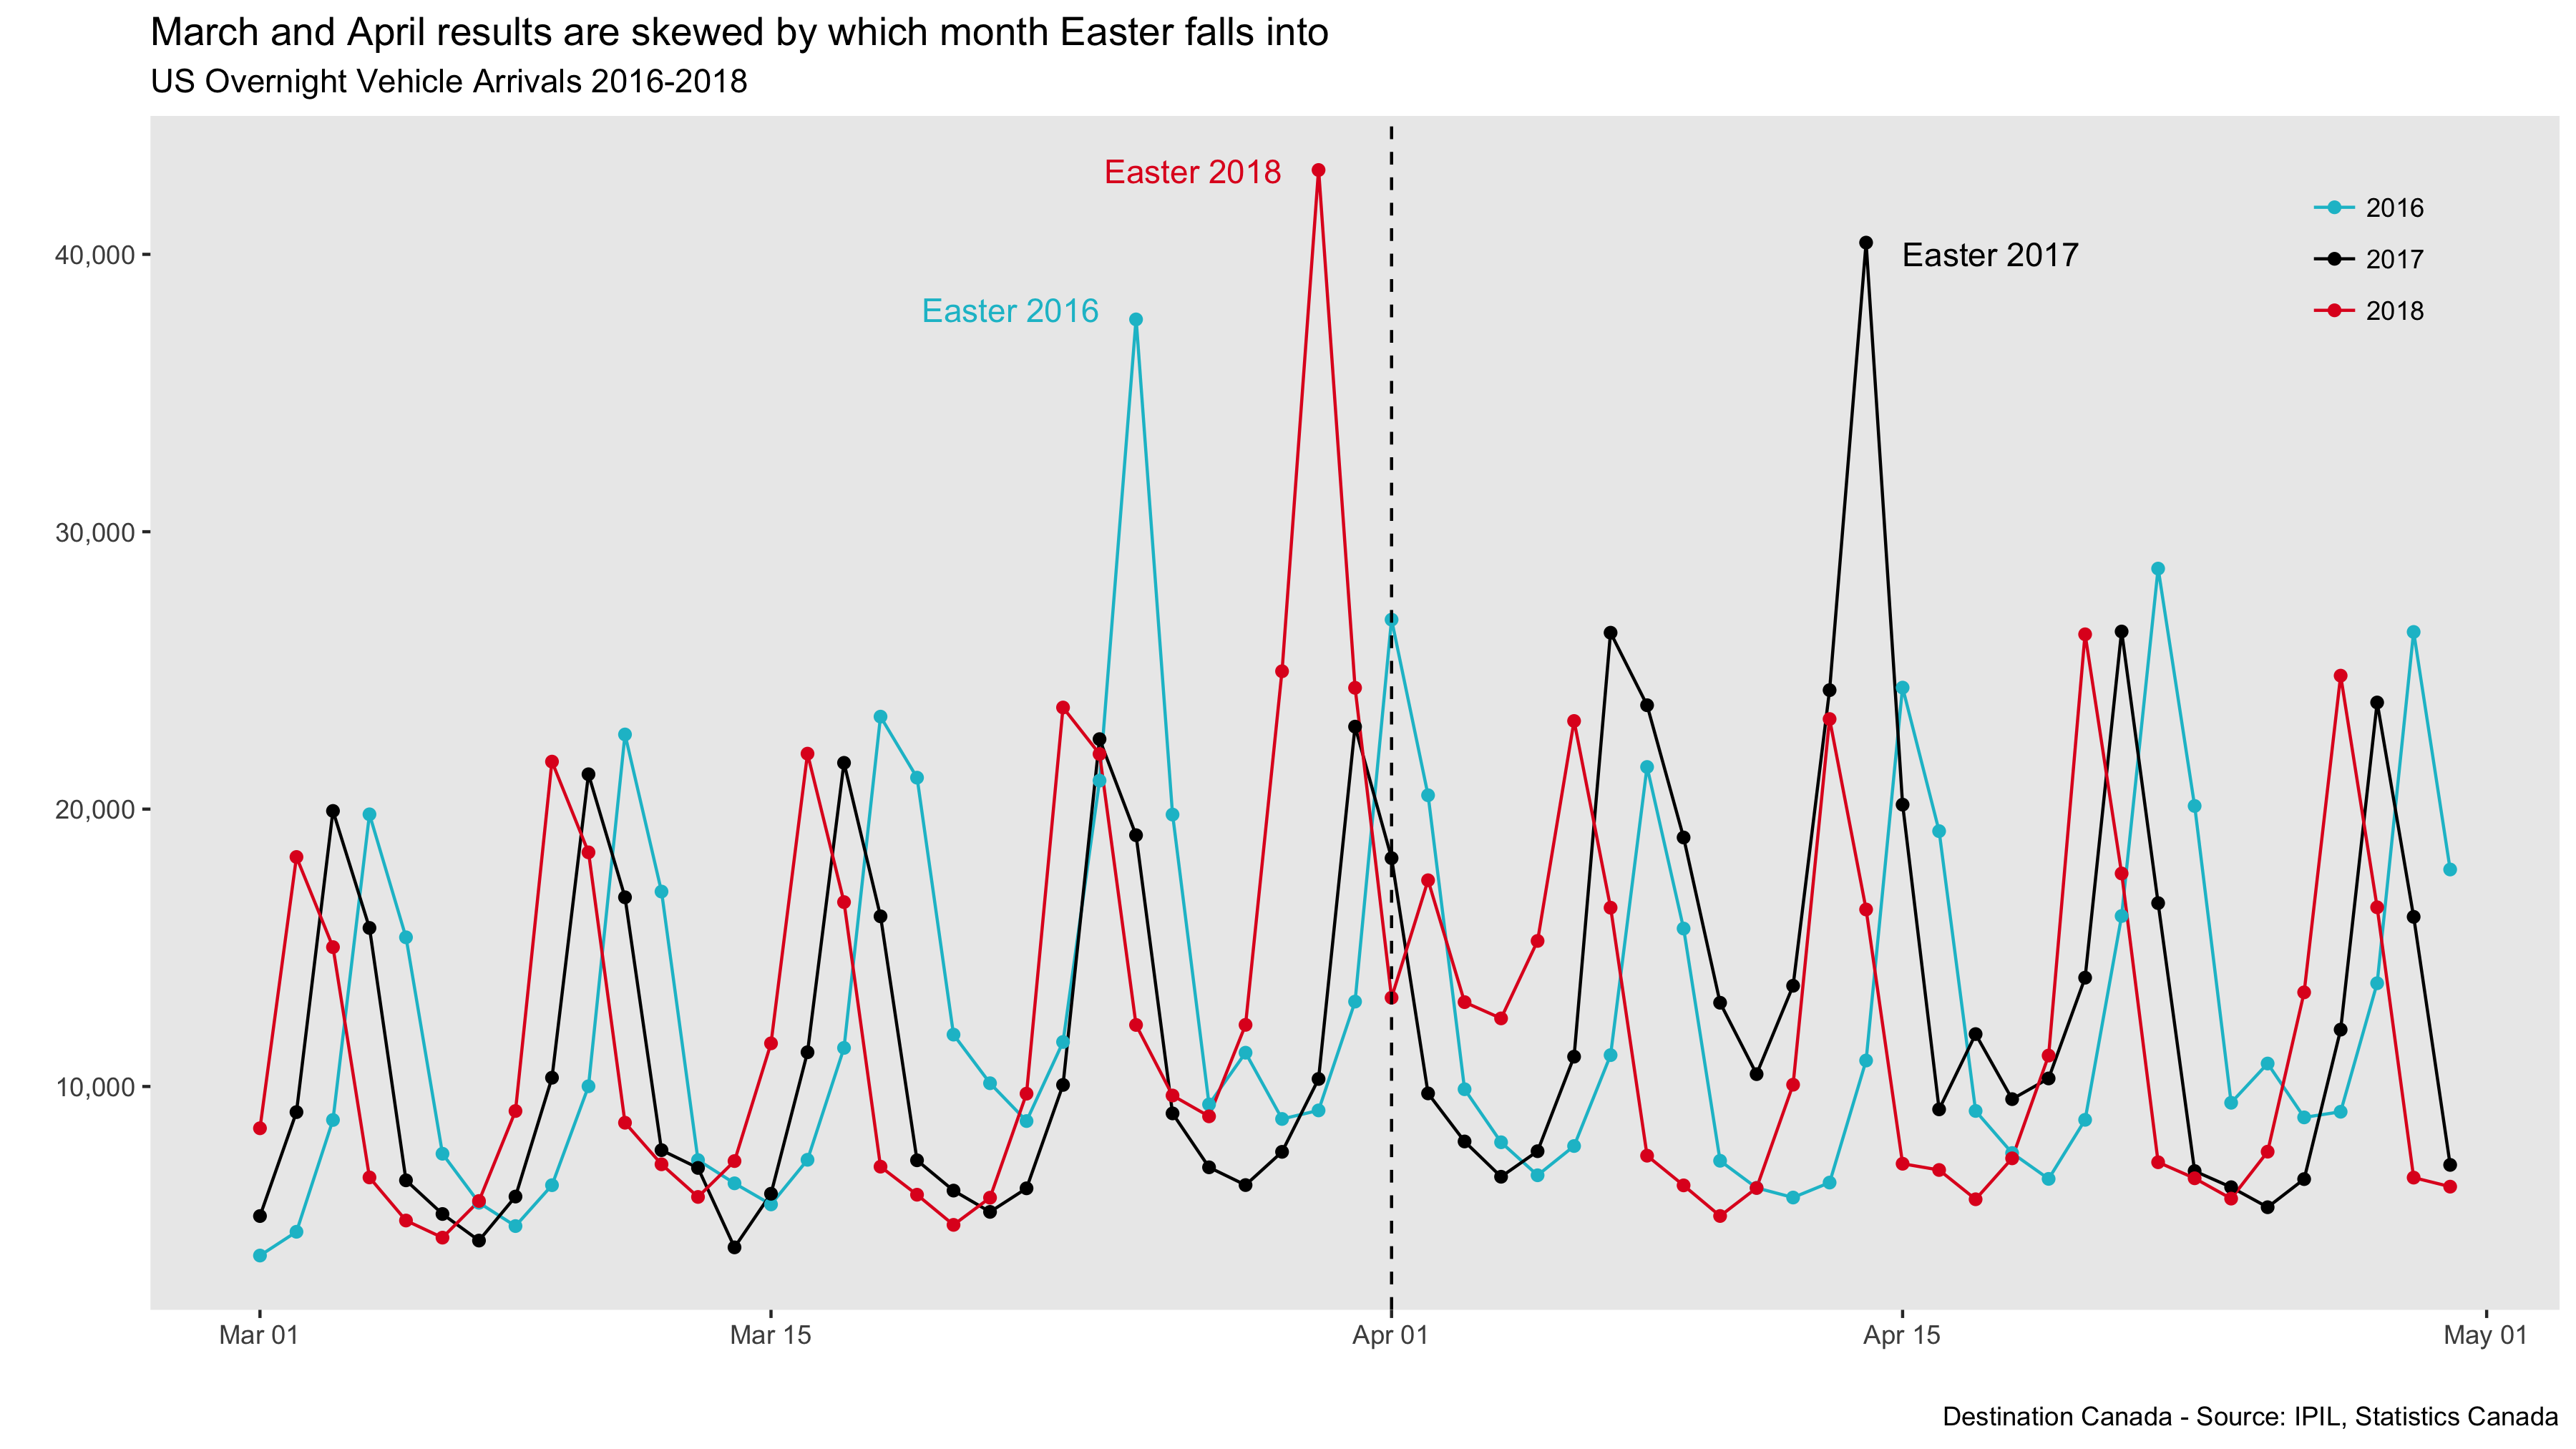 March and April results are skewed by which month Easter falls in